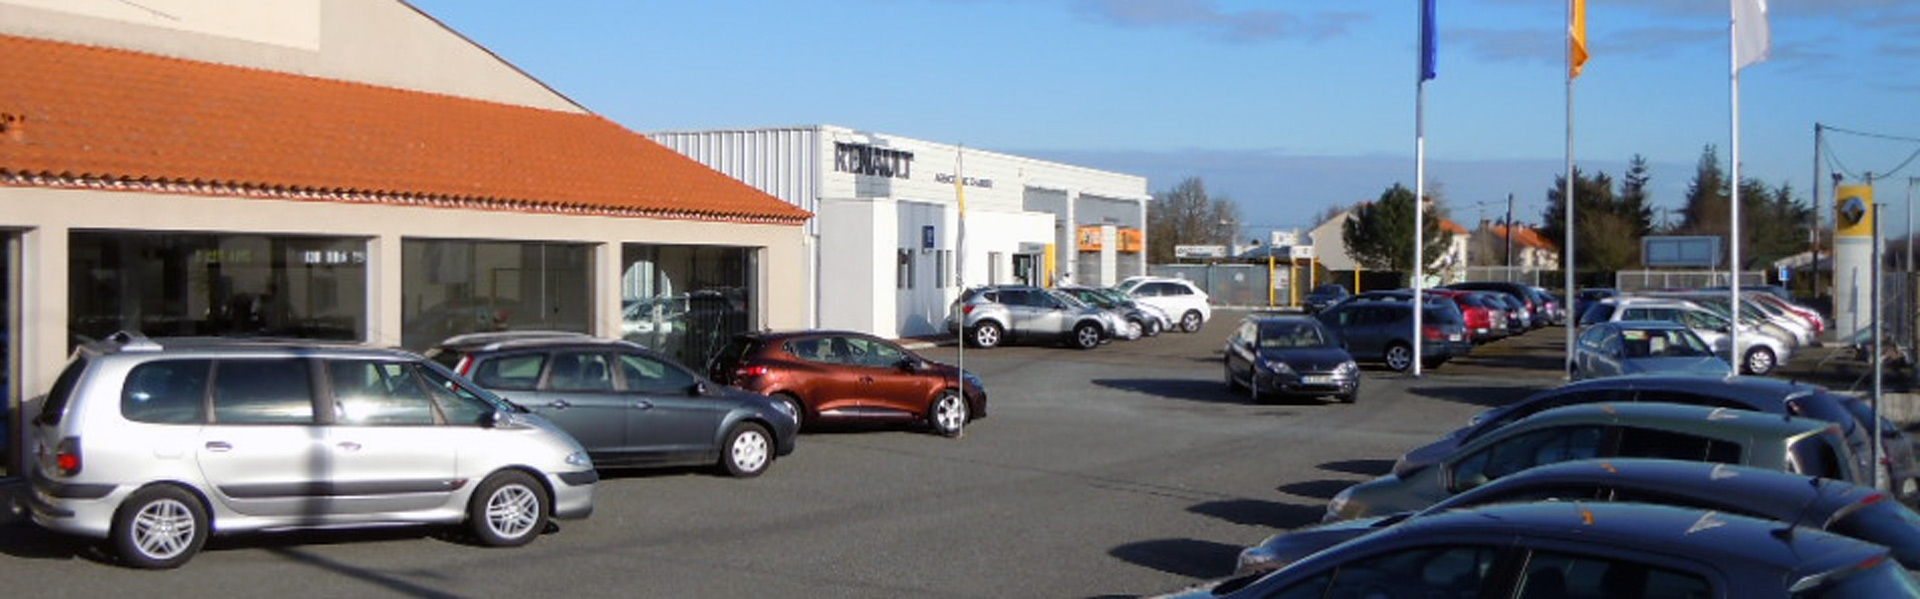 Garage charrier vente de voiture d 39 occasion nantes for Garage vente de voiture d occasion montpellier